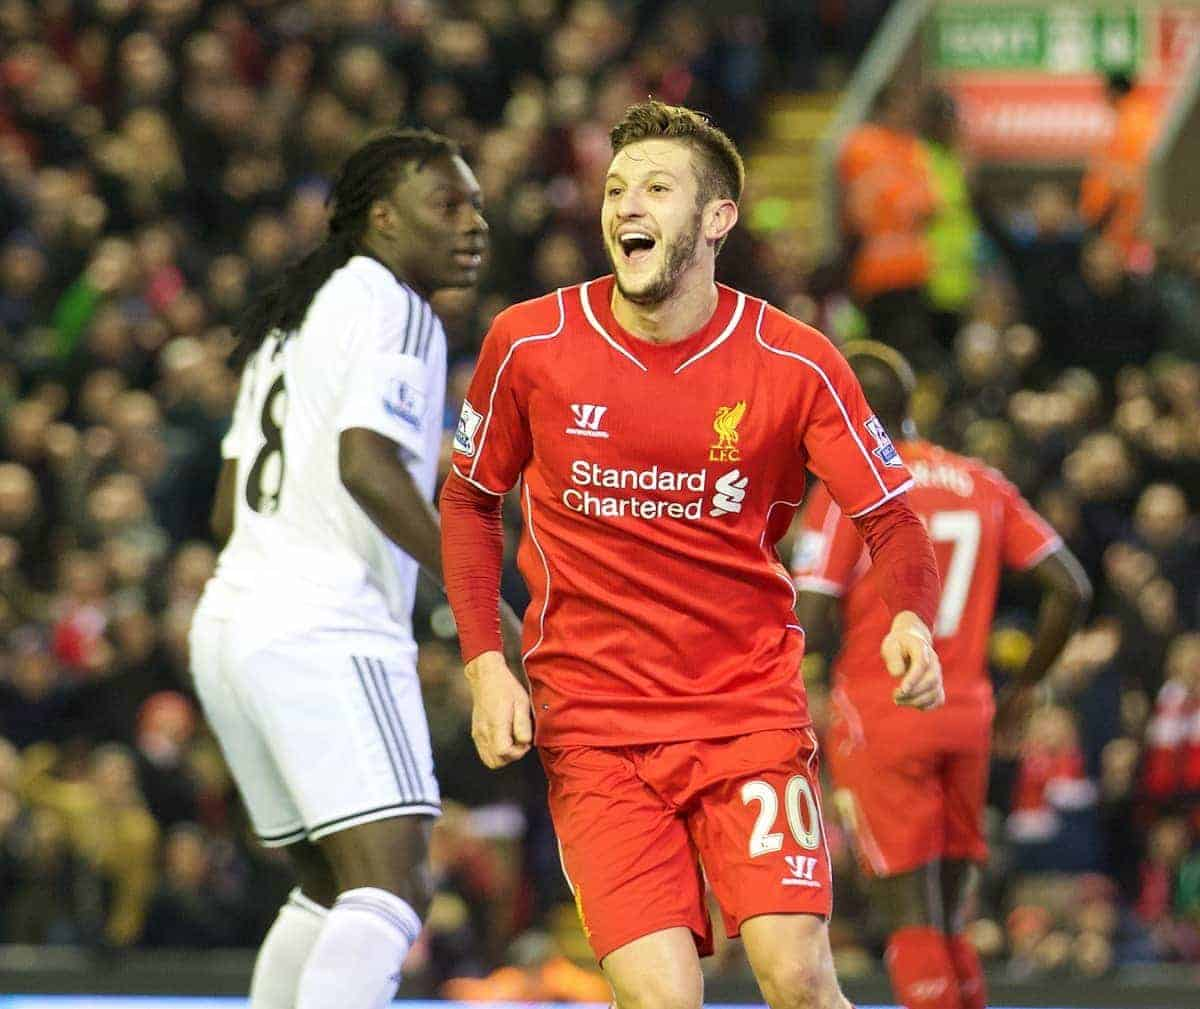 LIVERPOOL, ENGLAND - Monday, December 29, 2014: Liverpool's Adam Lallana celebrates his side's fourth goal against Swansea City during the Premier League match at Anfield. (Pic by David Rawcliffe/Propaganda)